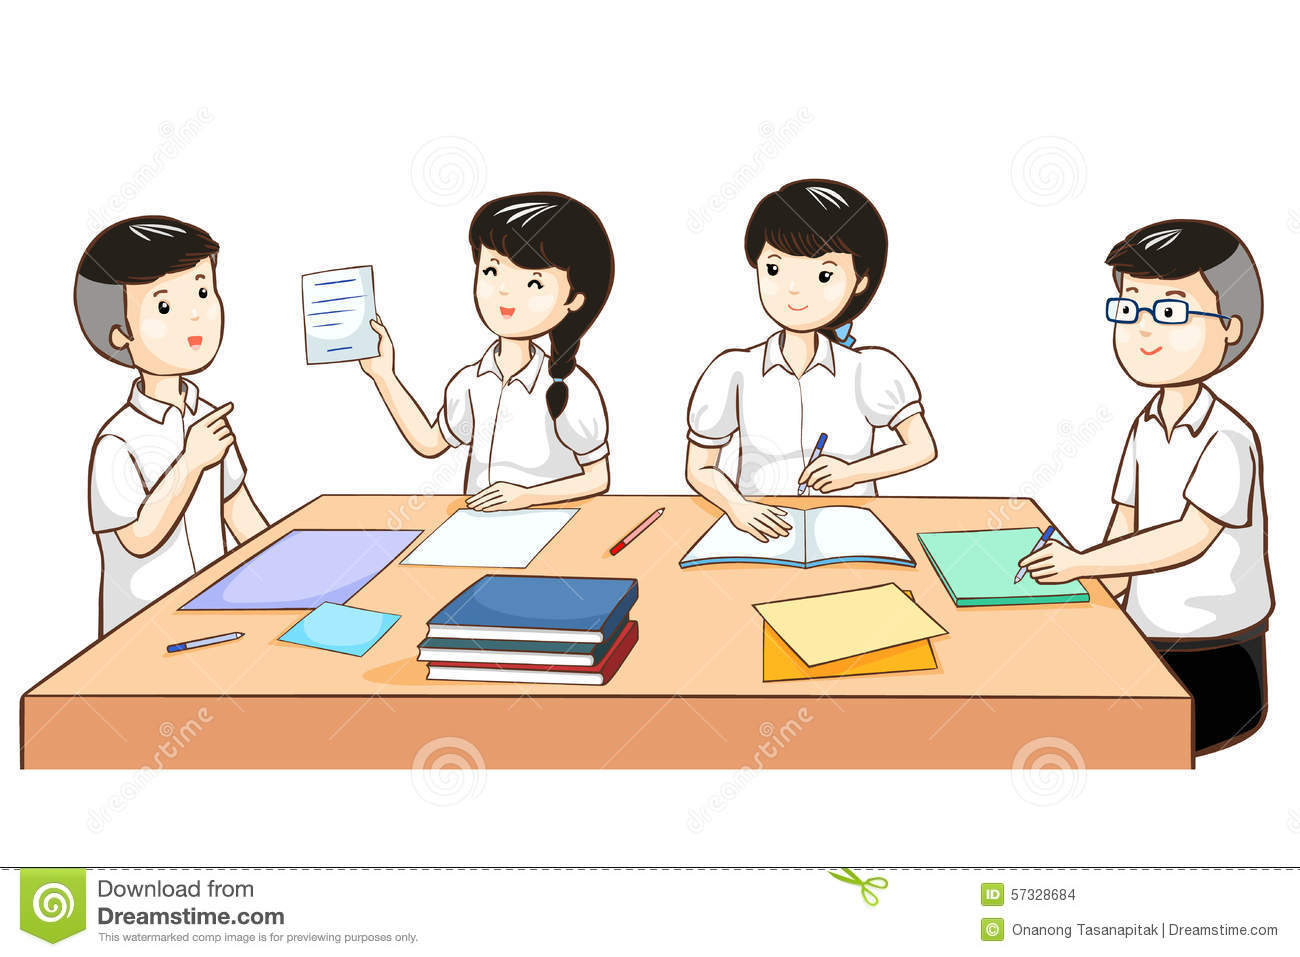 student work together in group stock vector - illustration of boyish